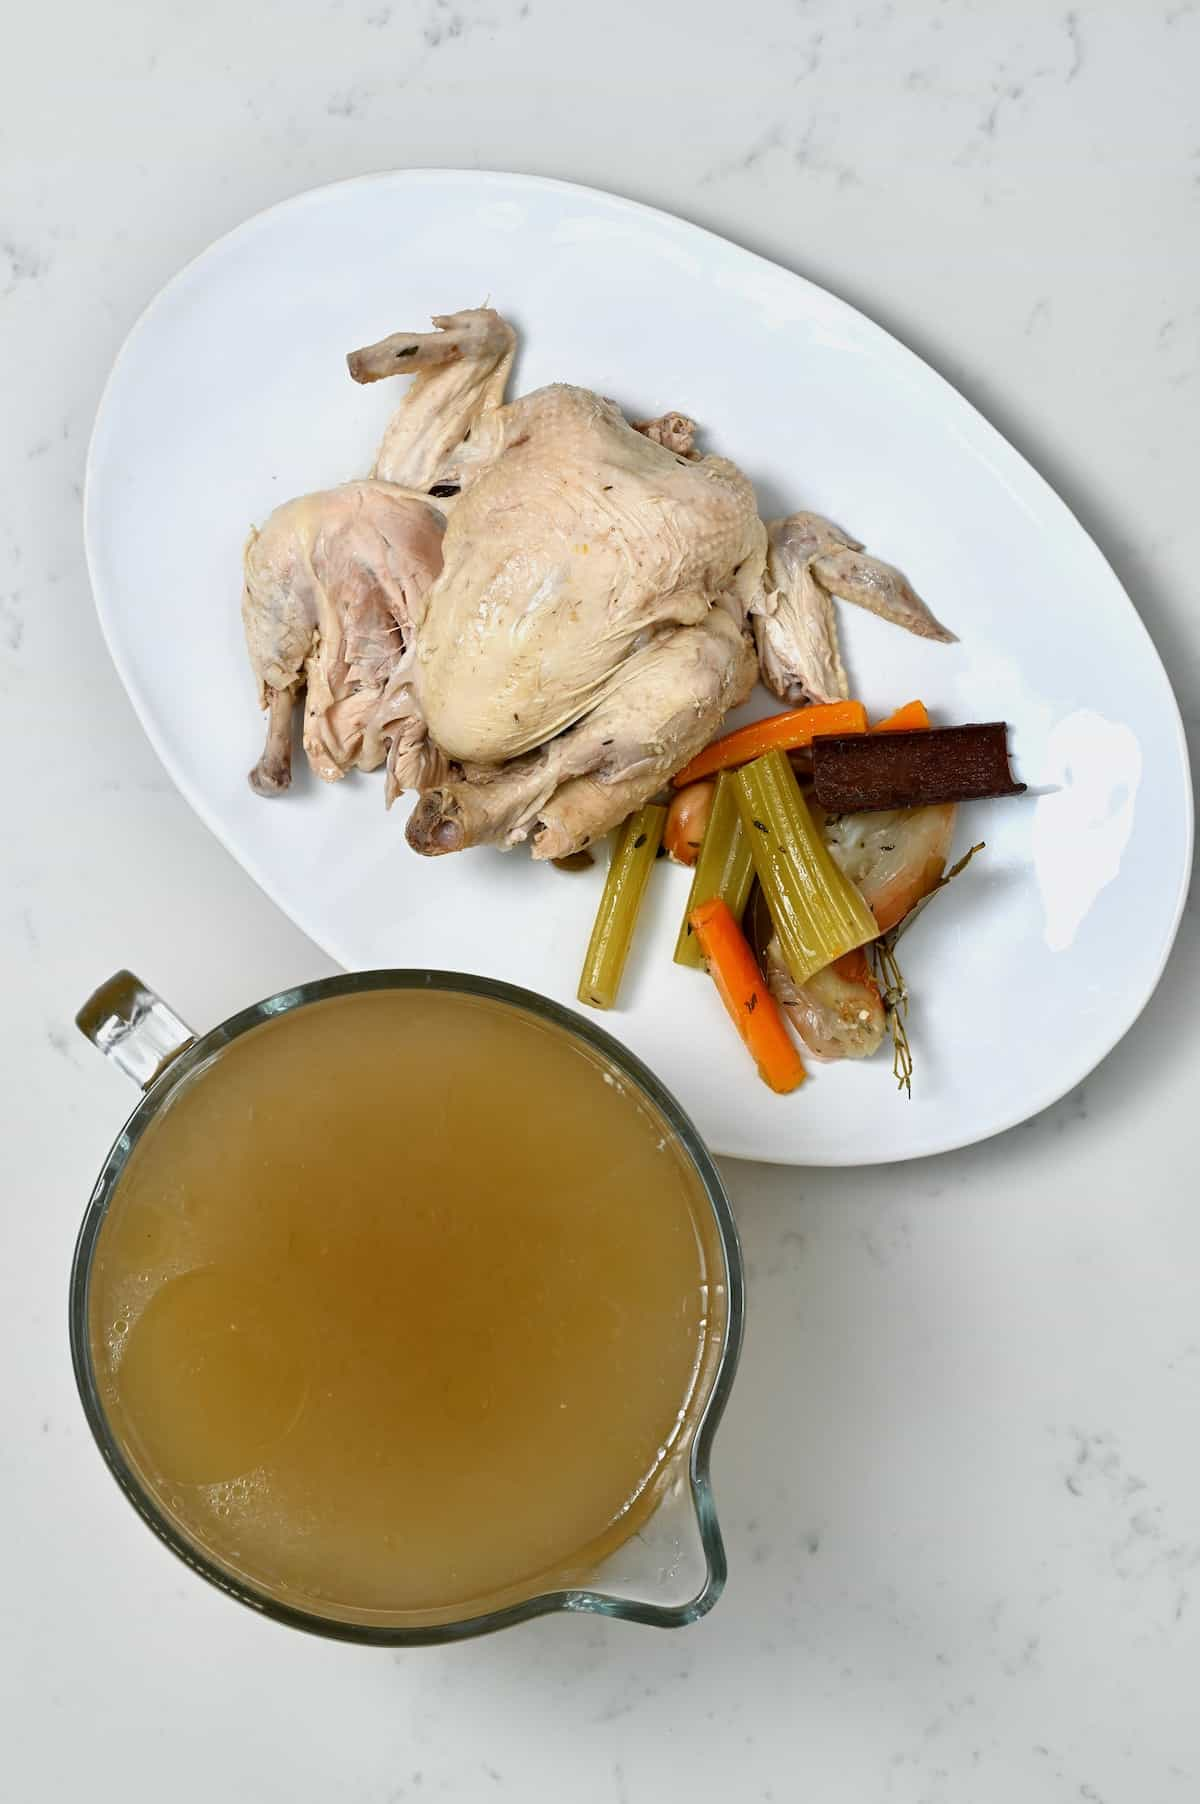 Homemade chicken stock and whole cooked chicken with vegetables